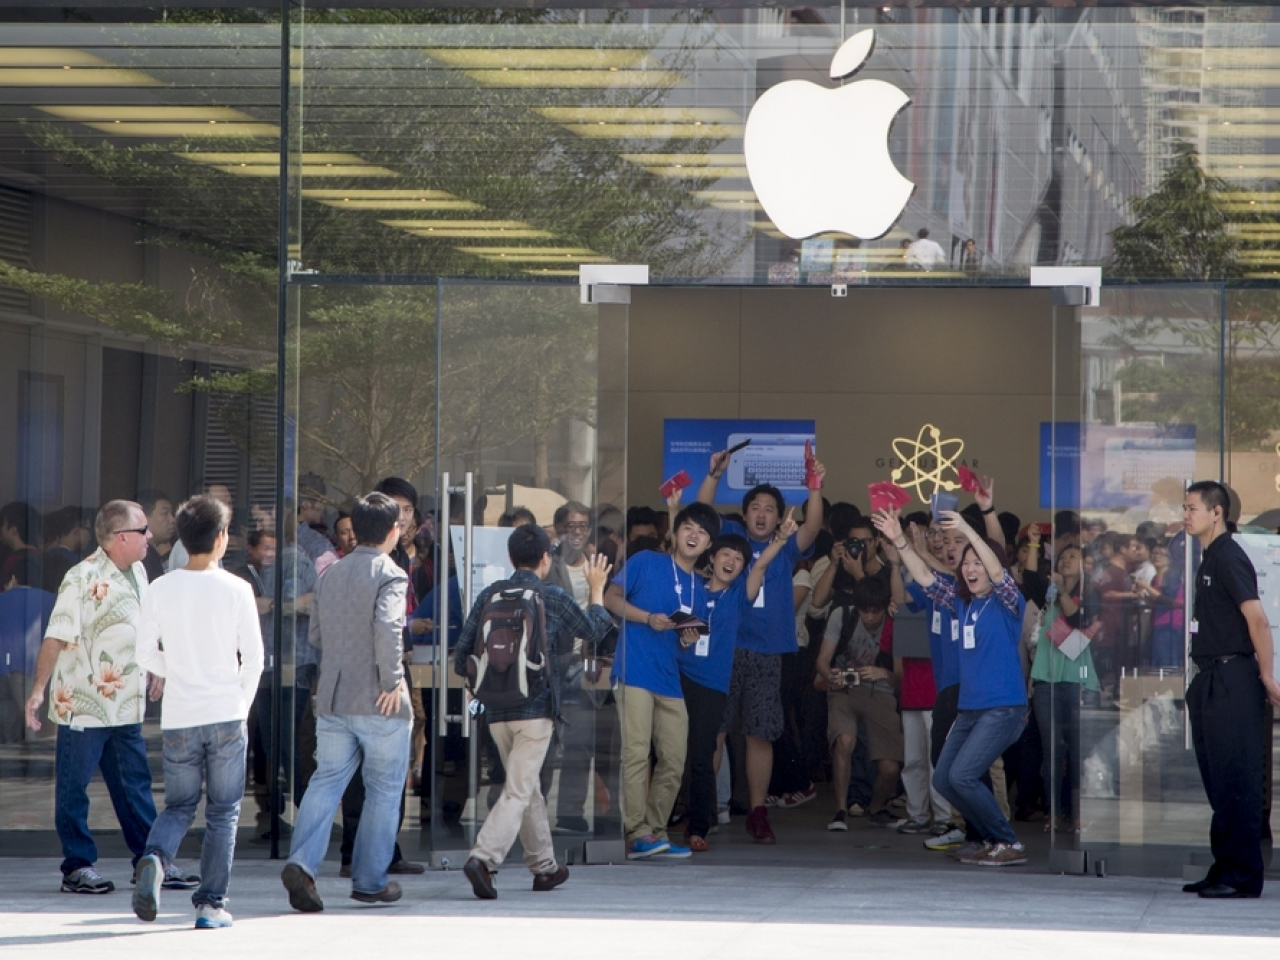 Shoppers crowd into an Apple store in Shenzhen. The US tech company said China sales grew 58 percent in the just-ended third quarter. File image: Shutterstock